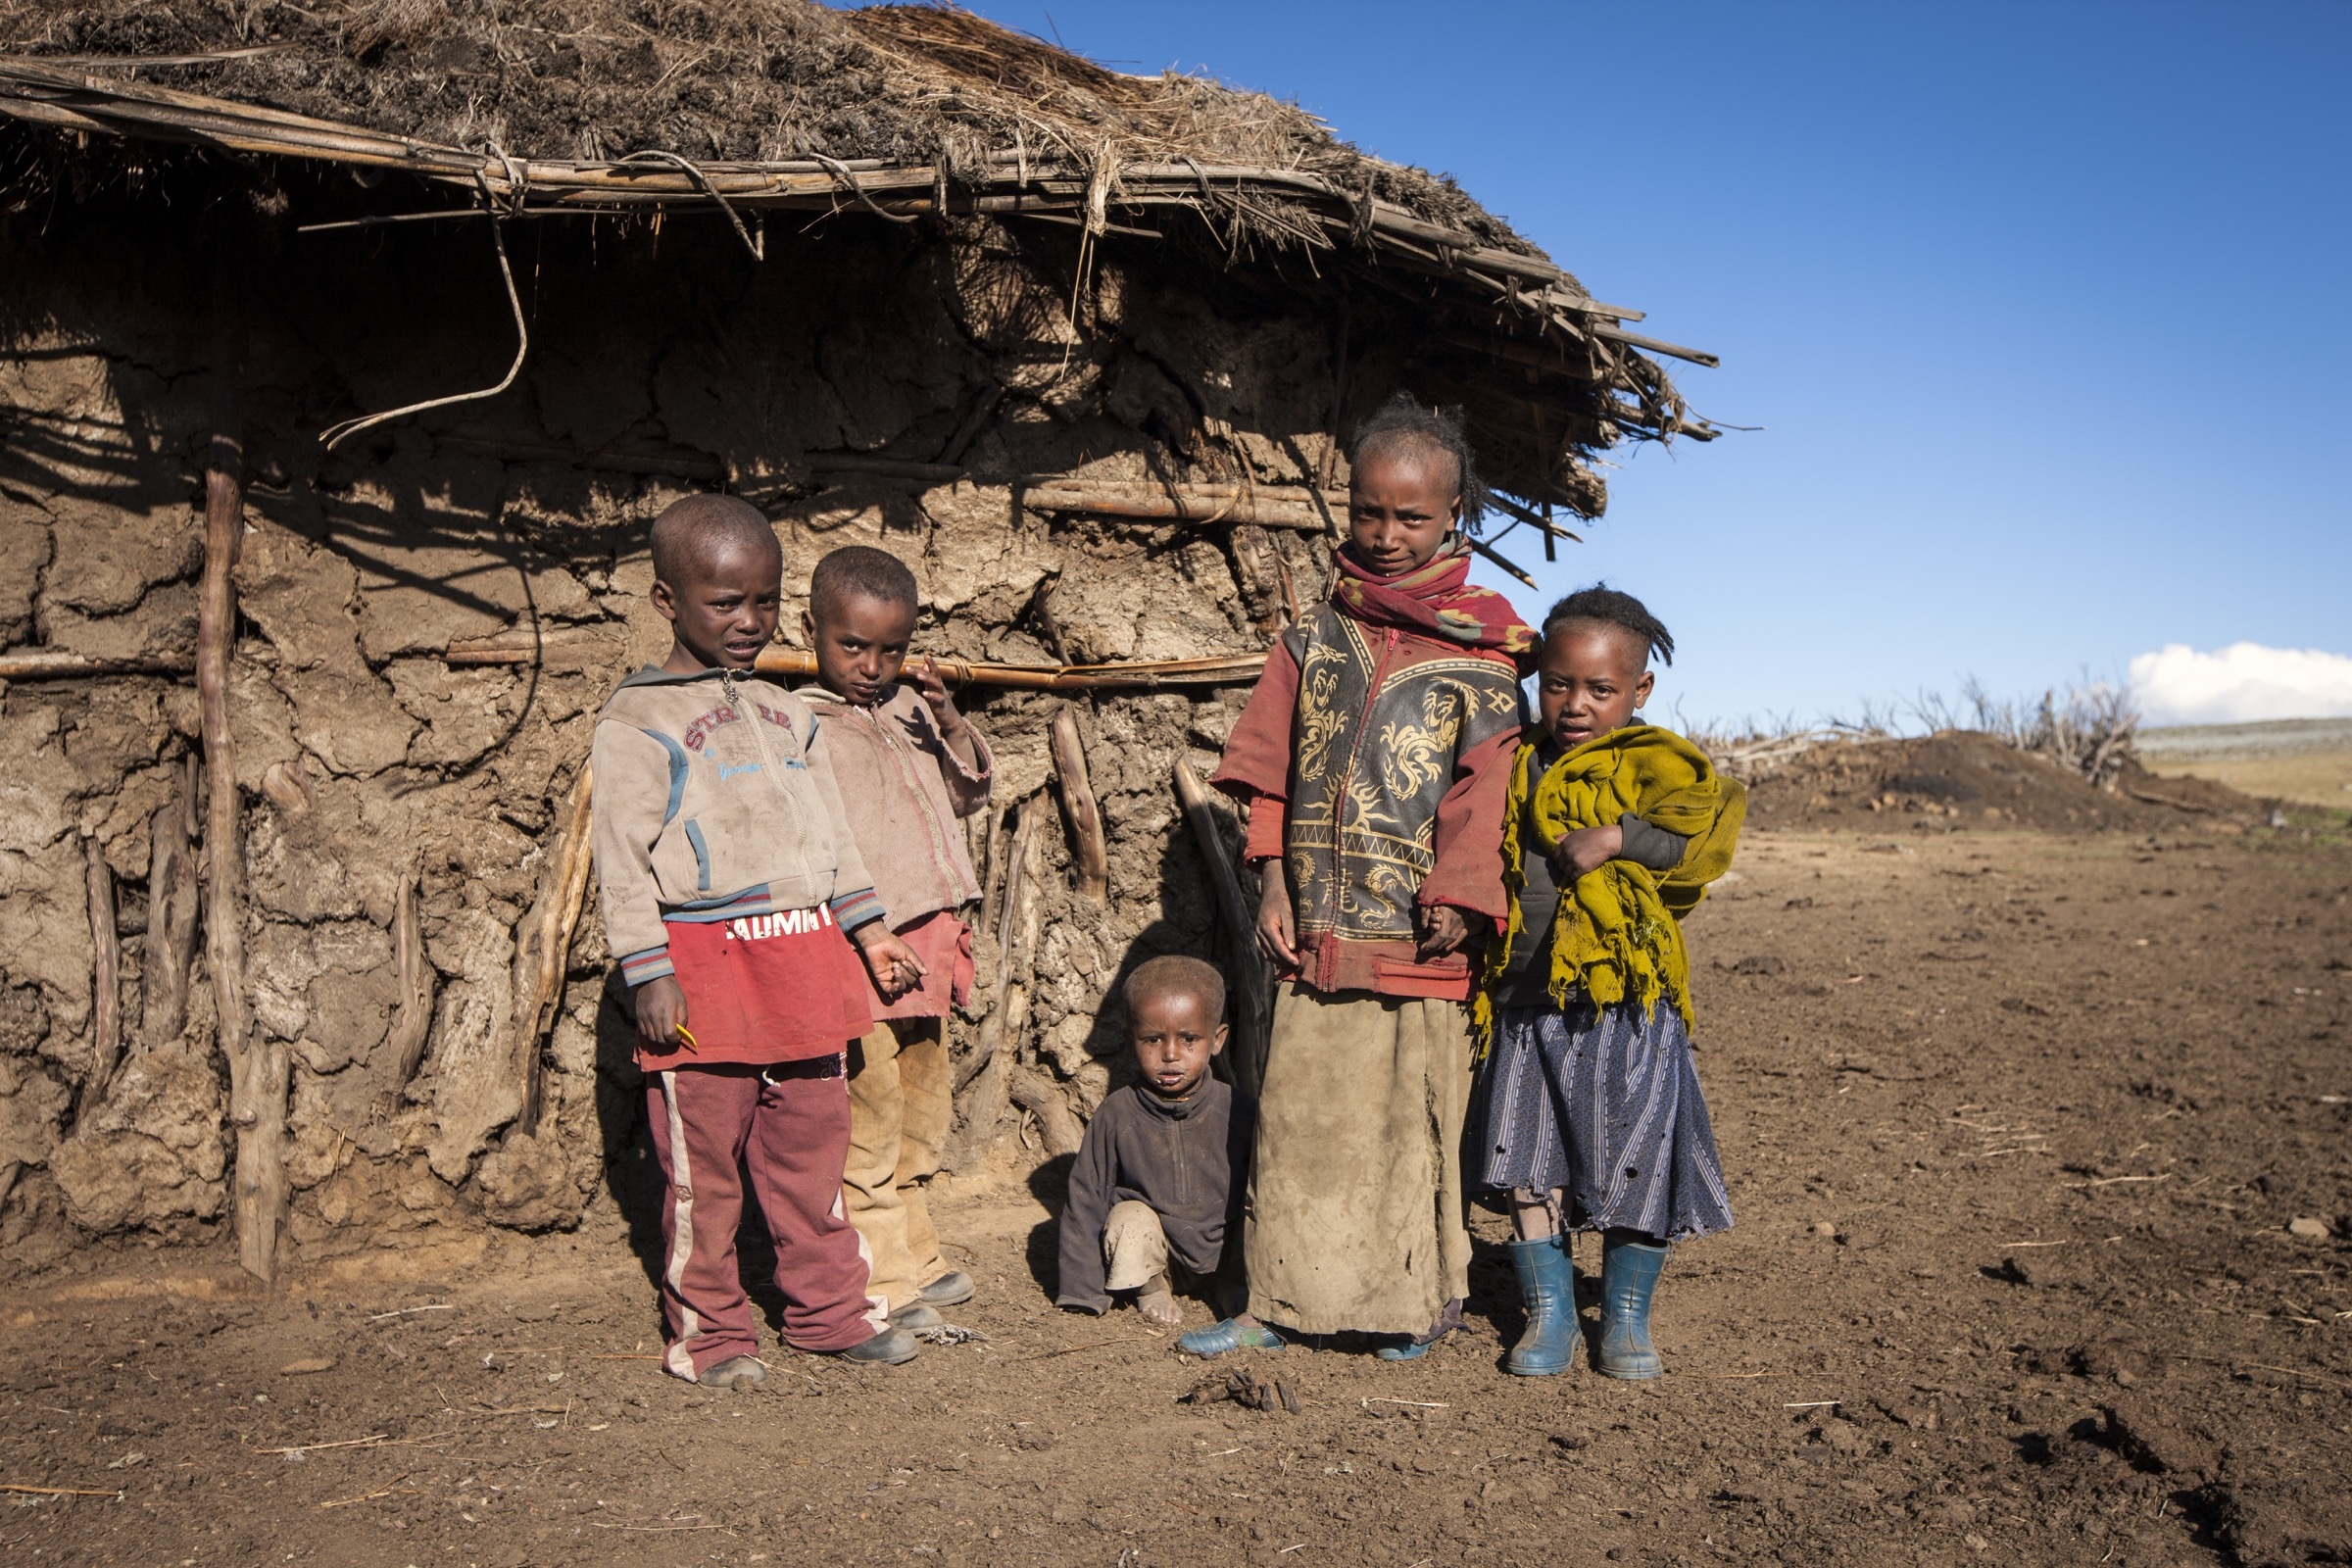 A group of inquisitive children stands outside of a mud hut in the Bale Mountains of Ethiopia.